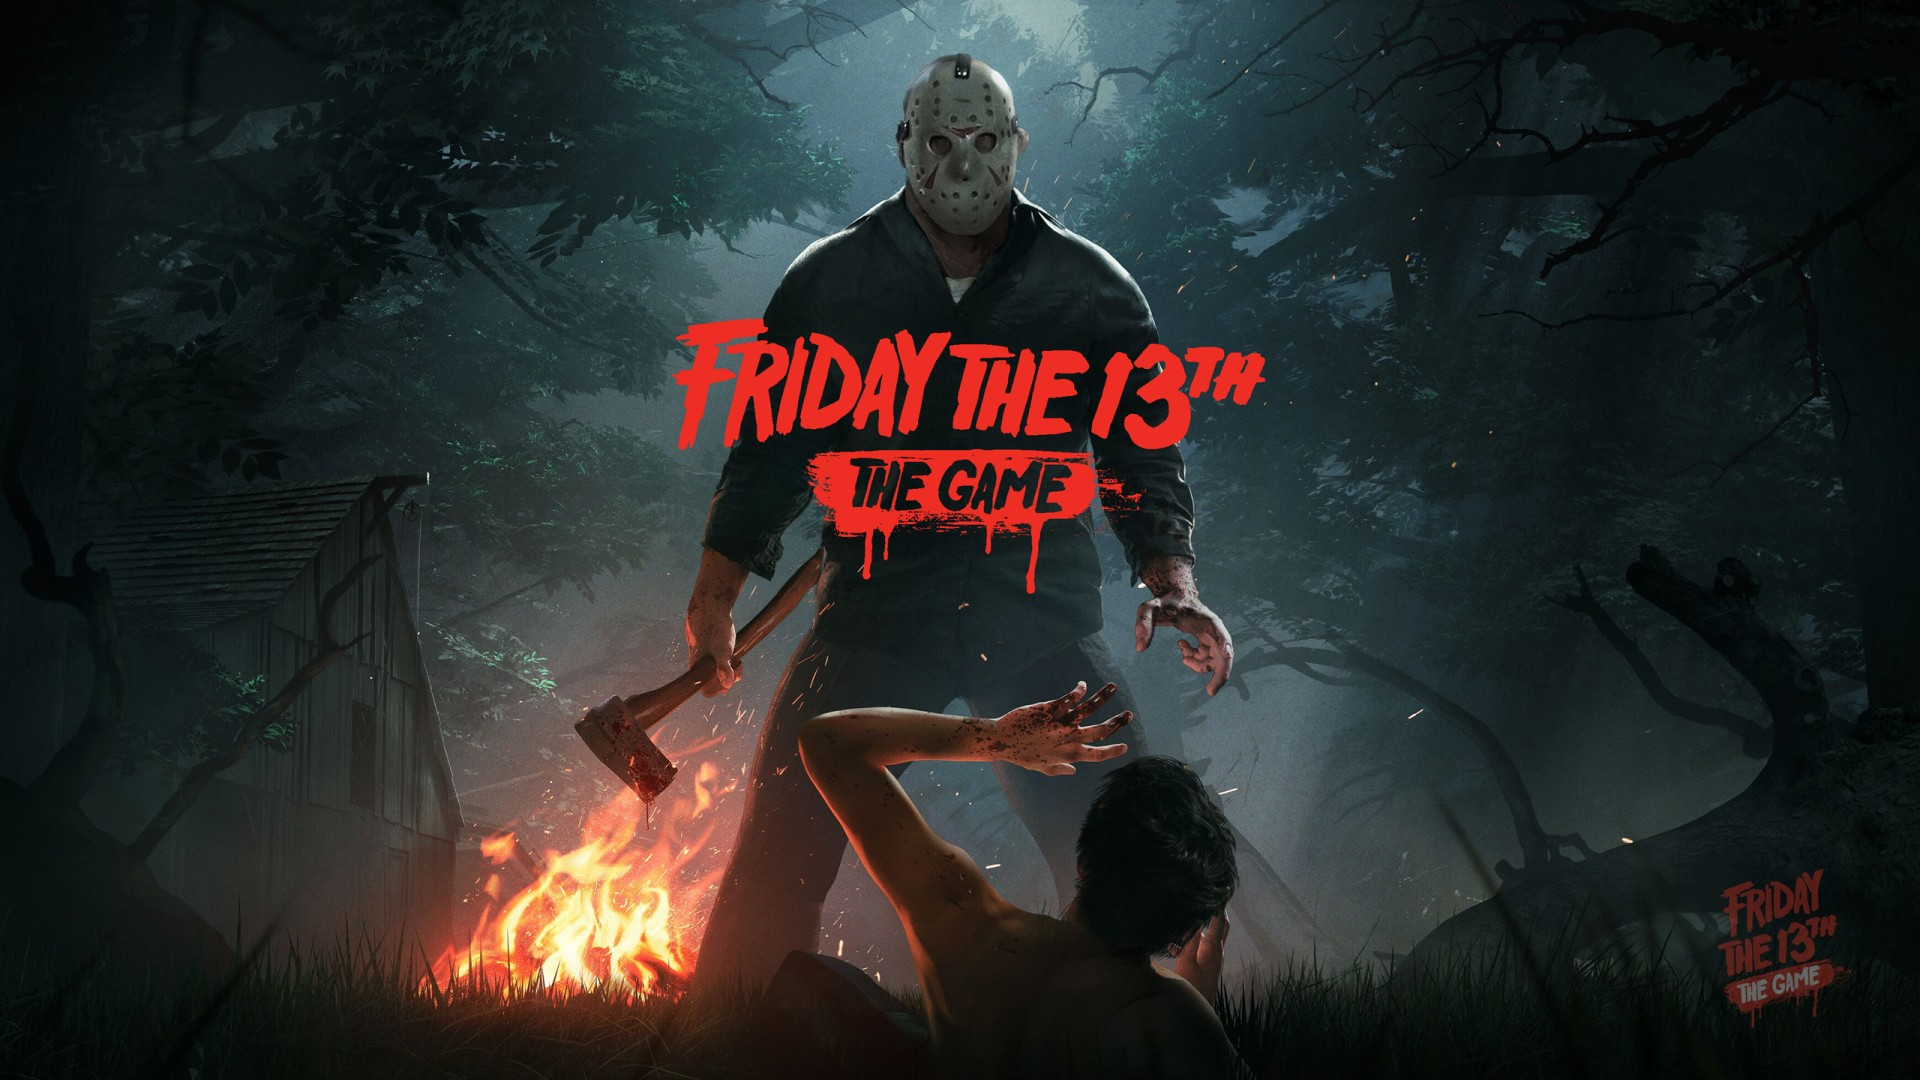 Iphone X Wallpaper Official Download Friday The 13th The Game Wallpapers Hd Wallpapers Id